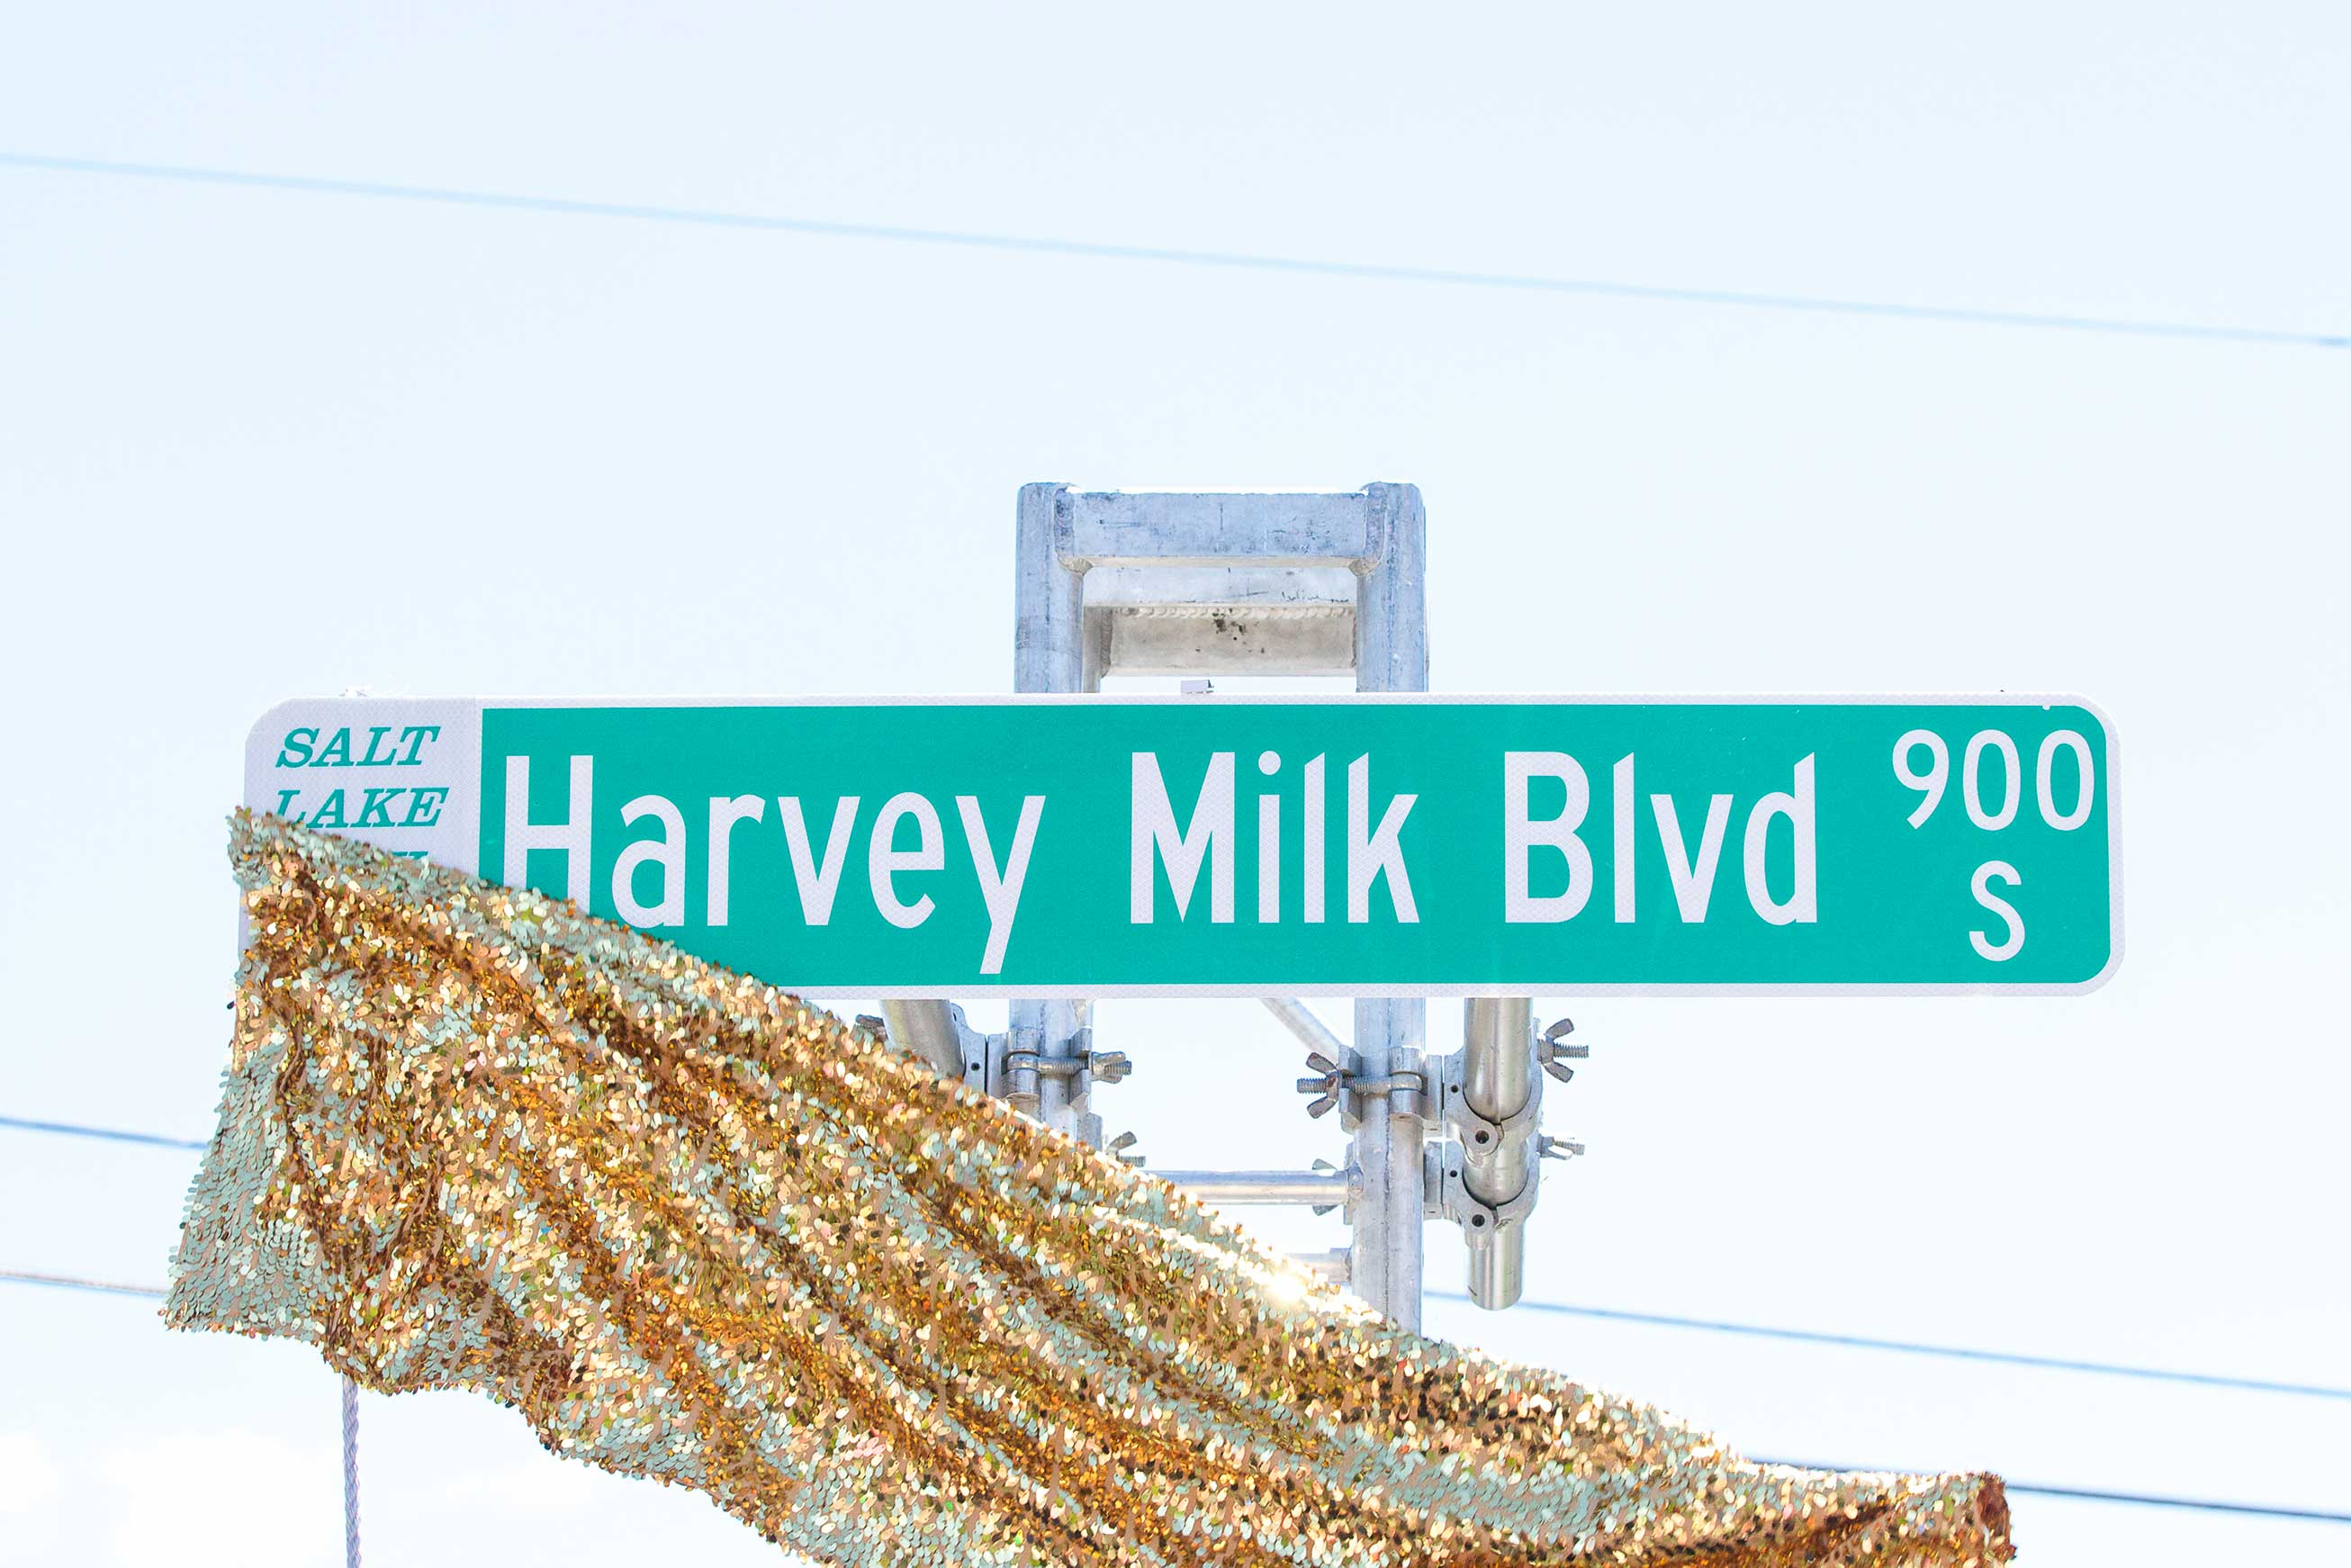 Unveiling of the Harvey Milk Blvd street signs in 2016